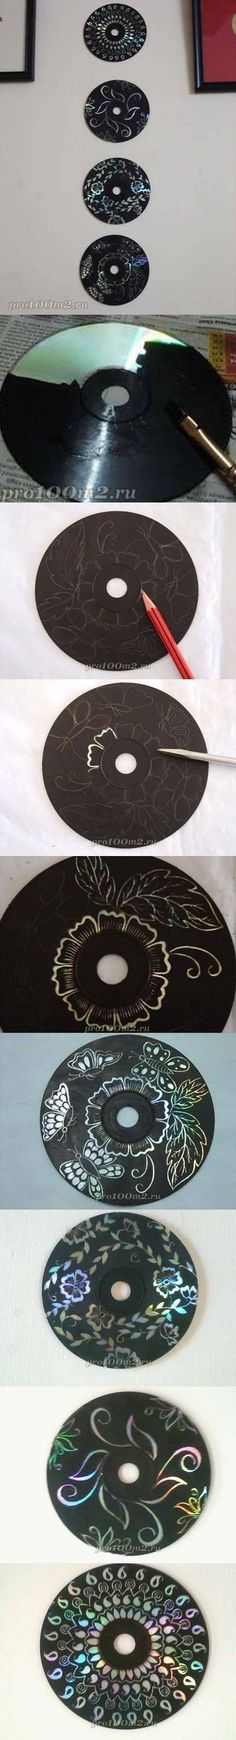 DIY-Wall-Decoration-with-CD.jpg 431×3,179 pixels